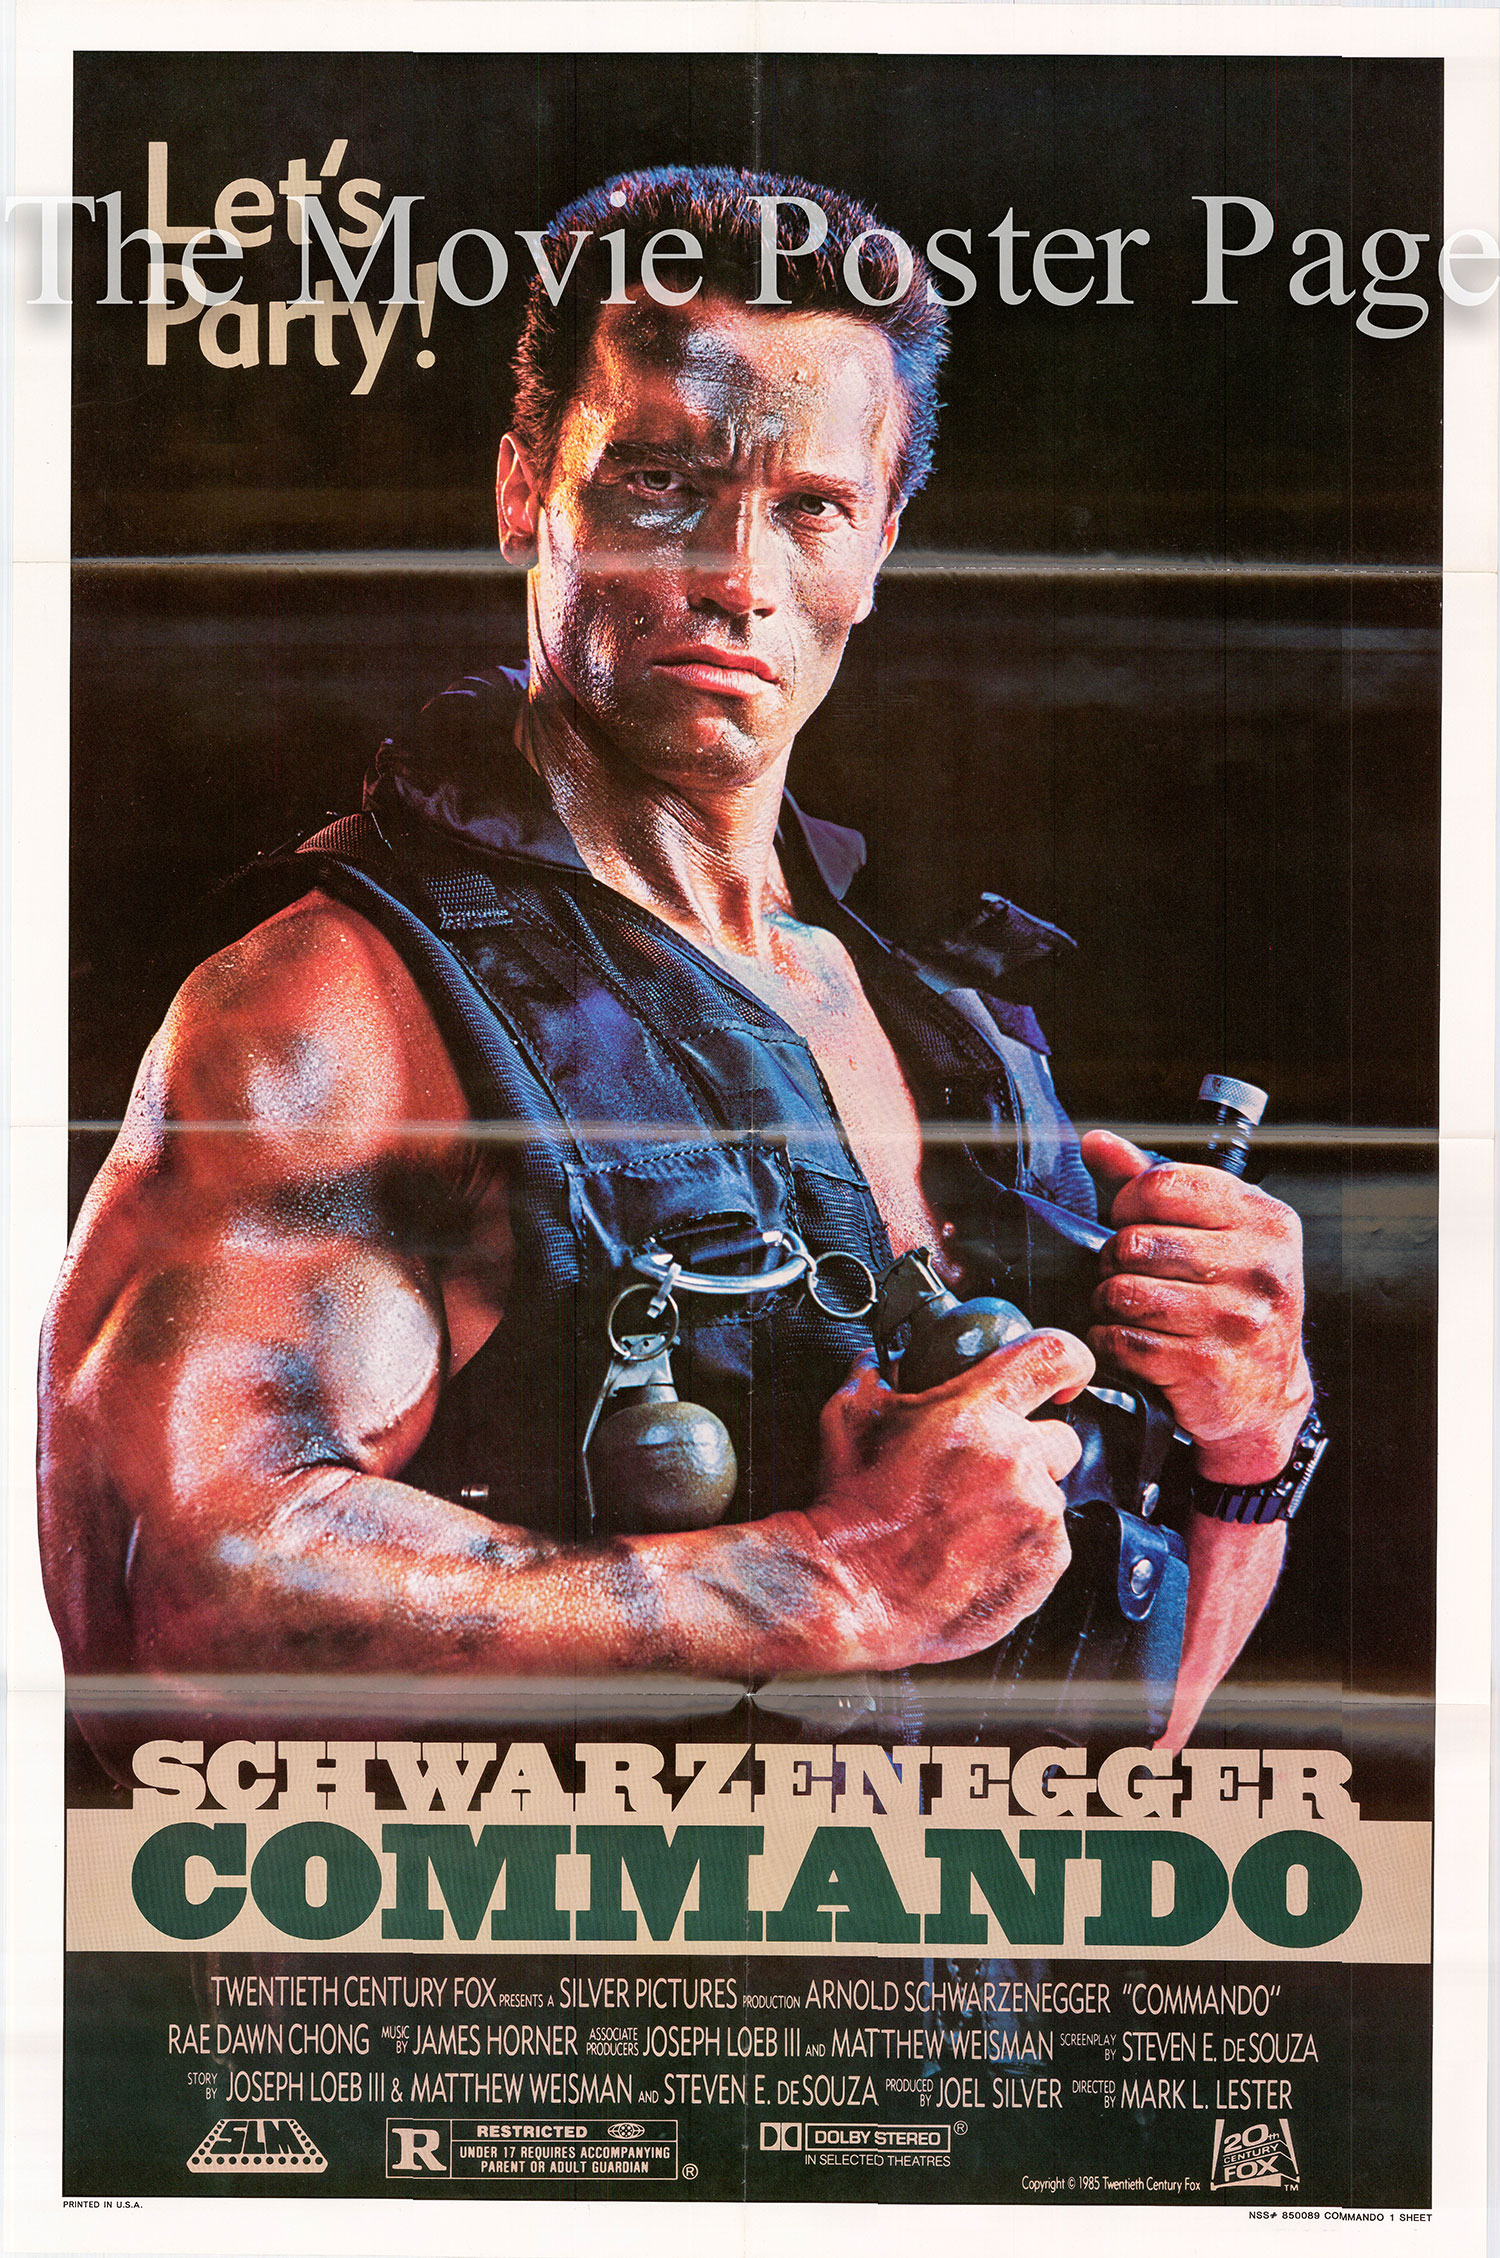 Pictured is a US one-sheet poster fo the 1985 film Commando starring Arnold Schwarzenegger.